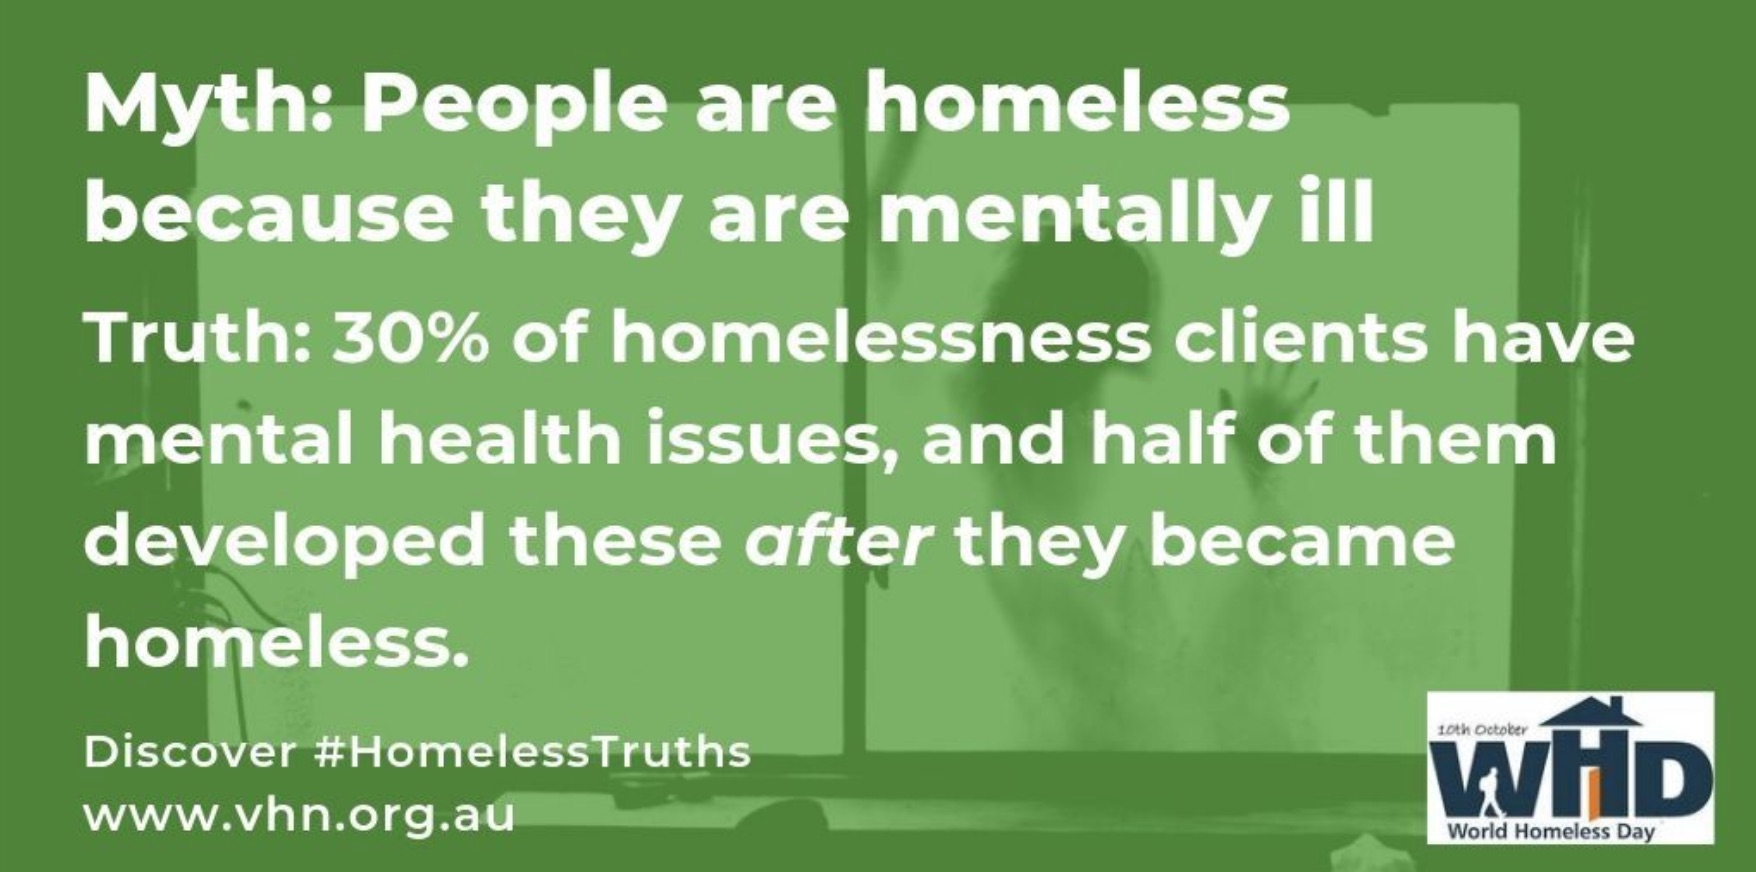 From social media to the streets, homelessness is a critical health concern